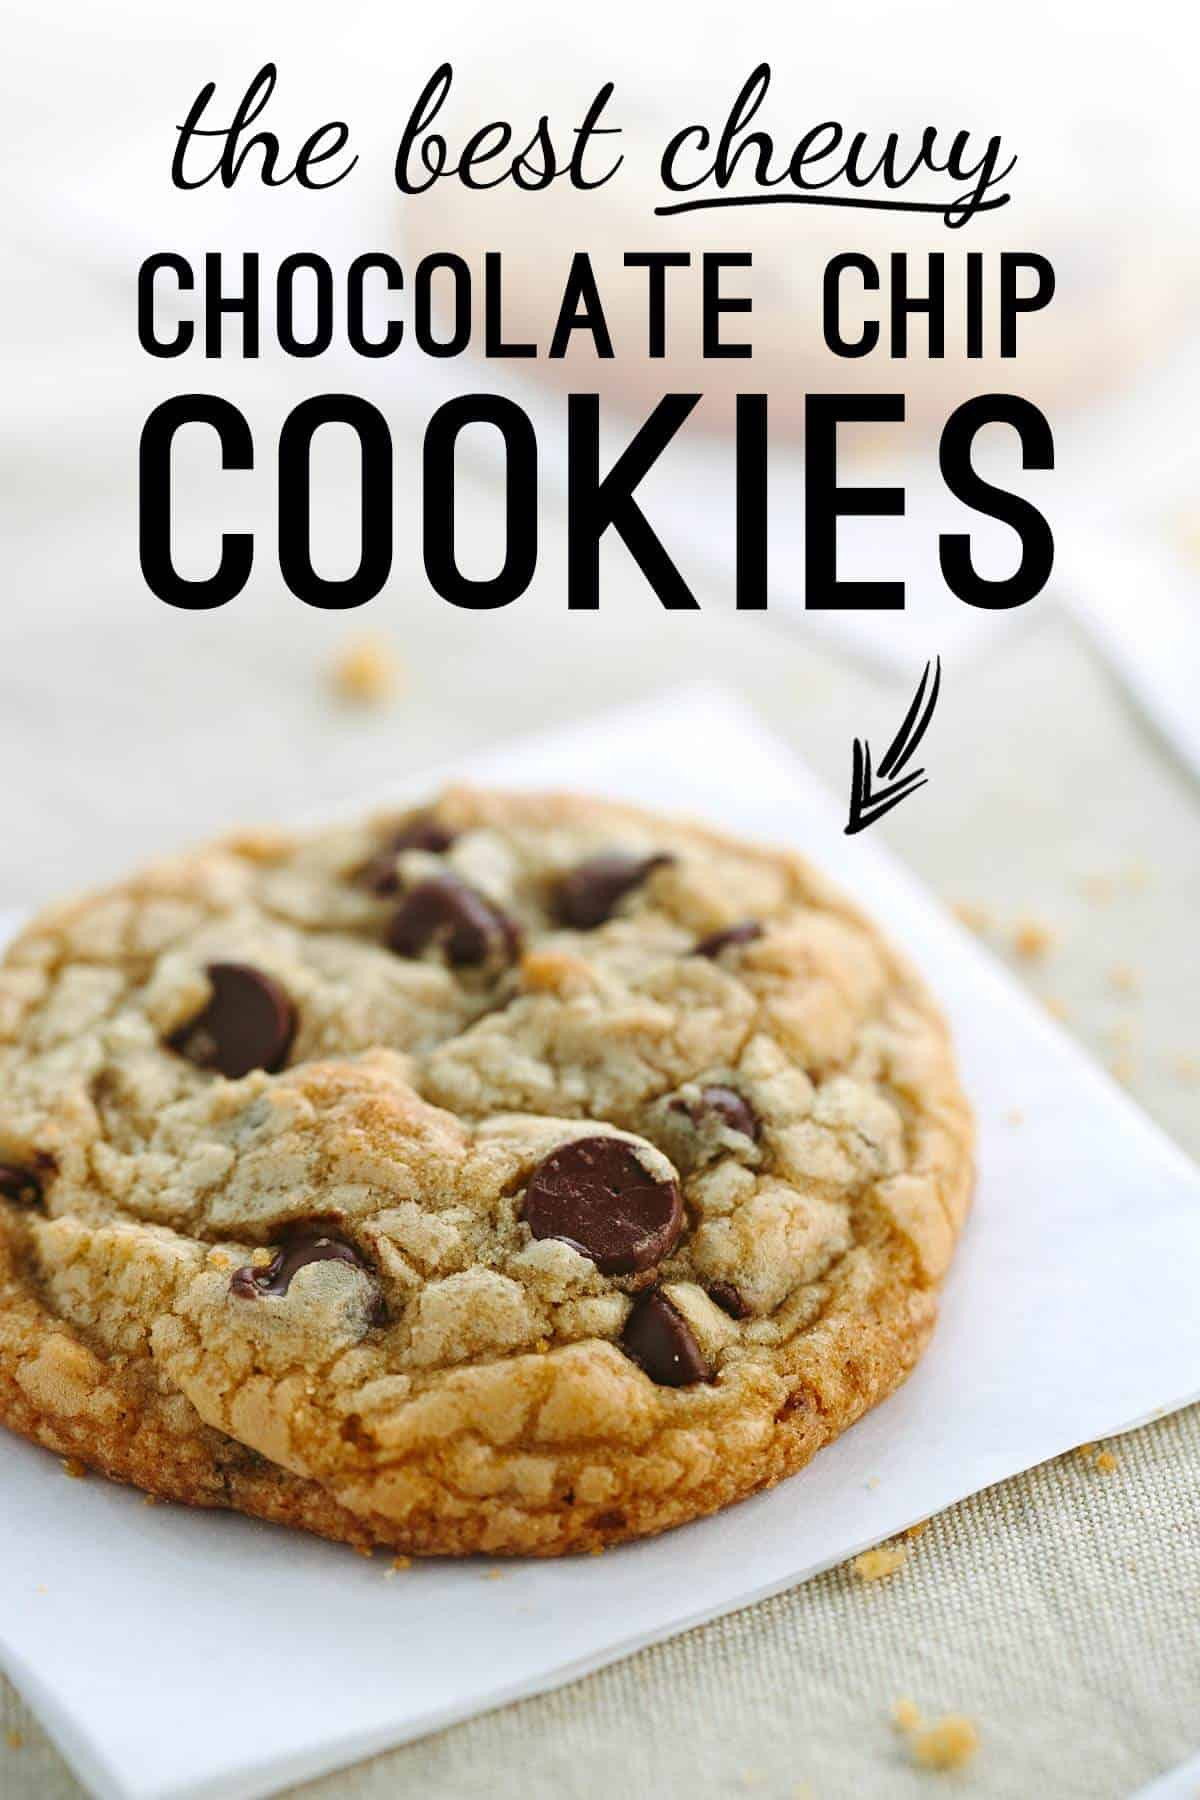 Best Chewy Chocolate Chip Cookies  The Best Chewy Chocolate Chip Cookies Recipe